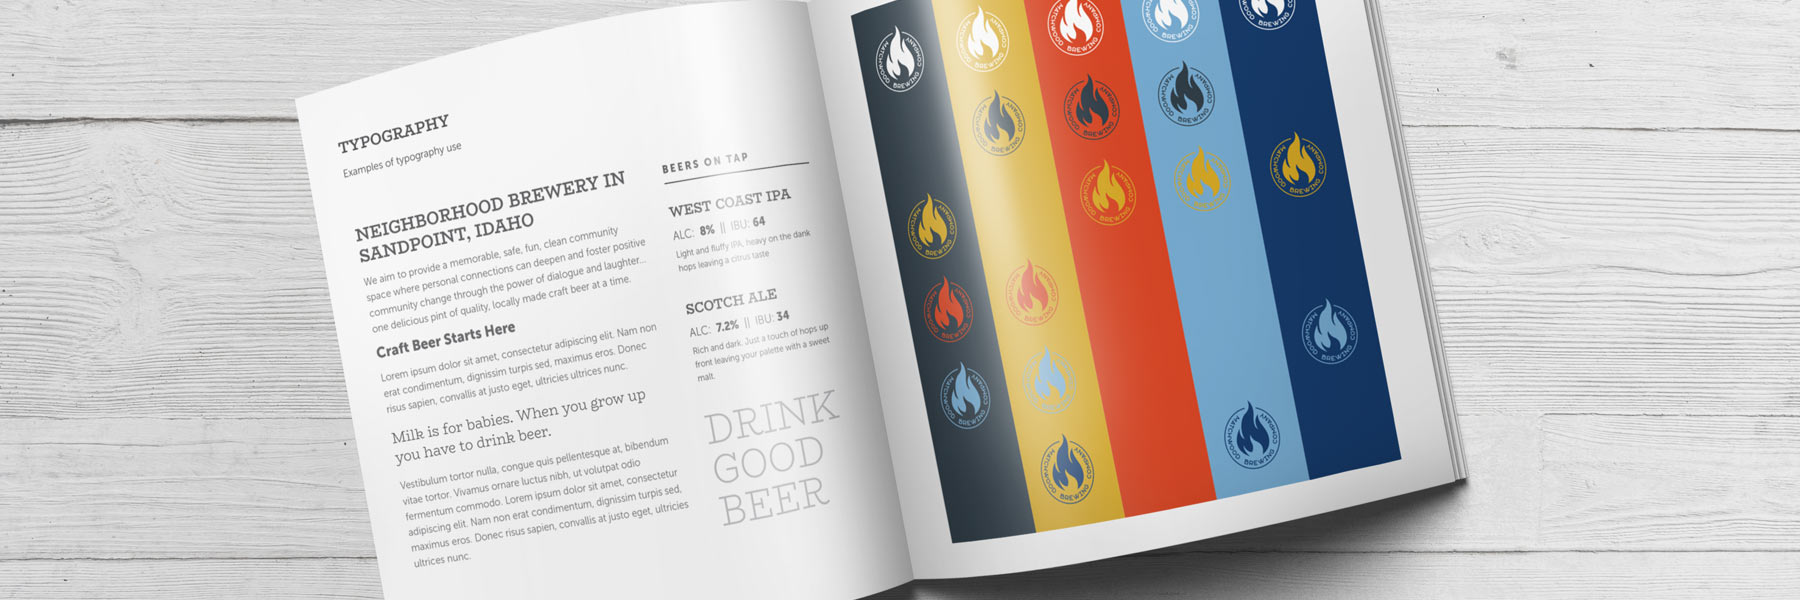 Brewery Brand Guidelines Book